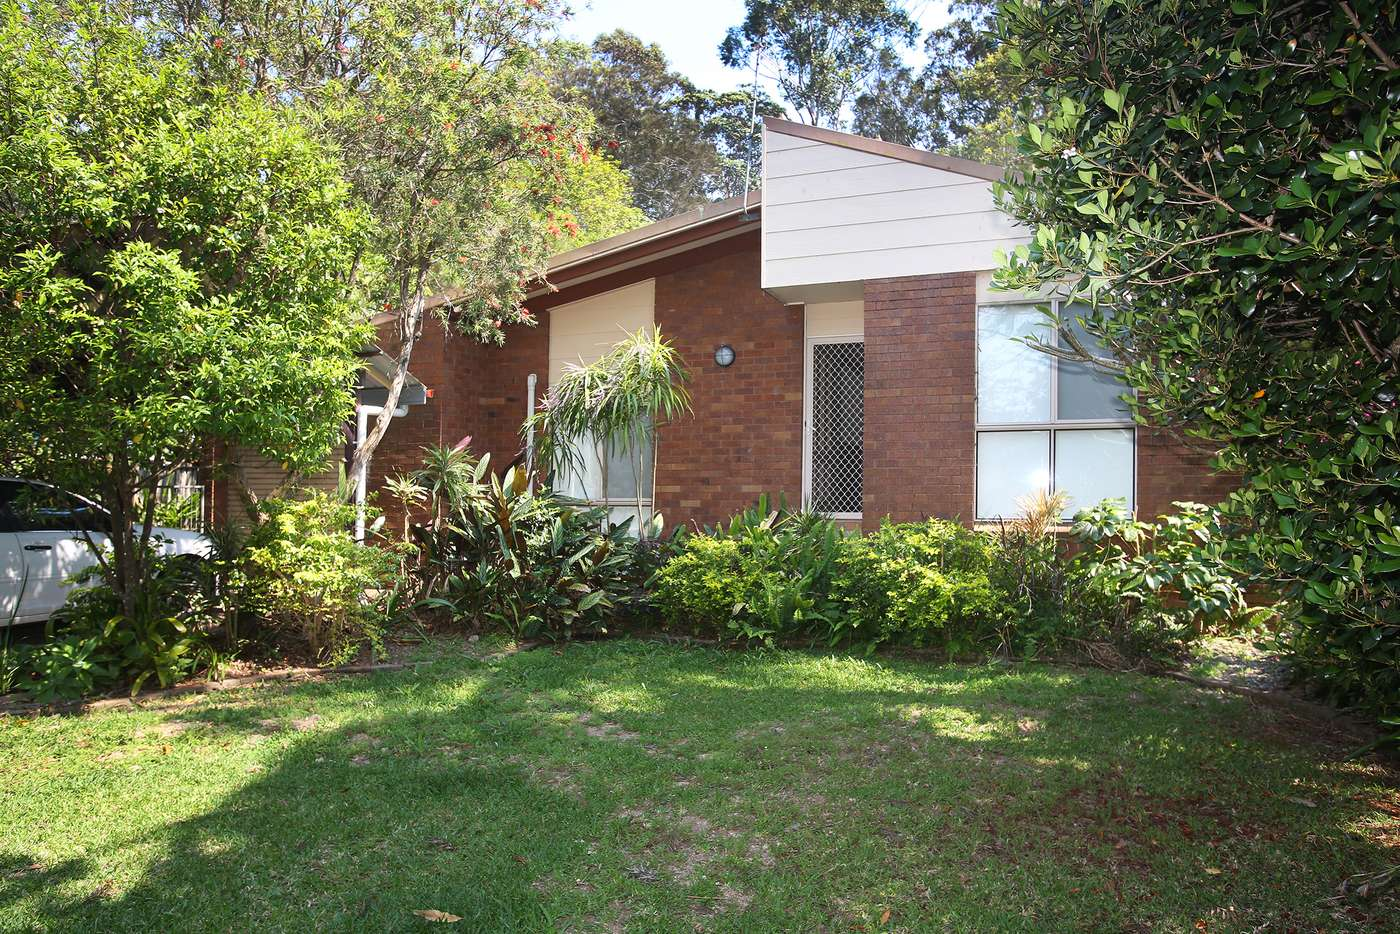 Main view of Homely house listing, 4 Bream Close, Emerald Beach NSW 2456